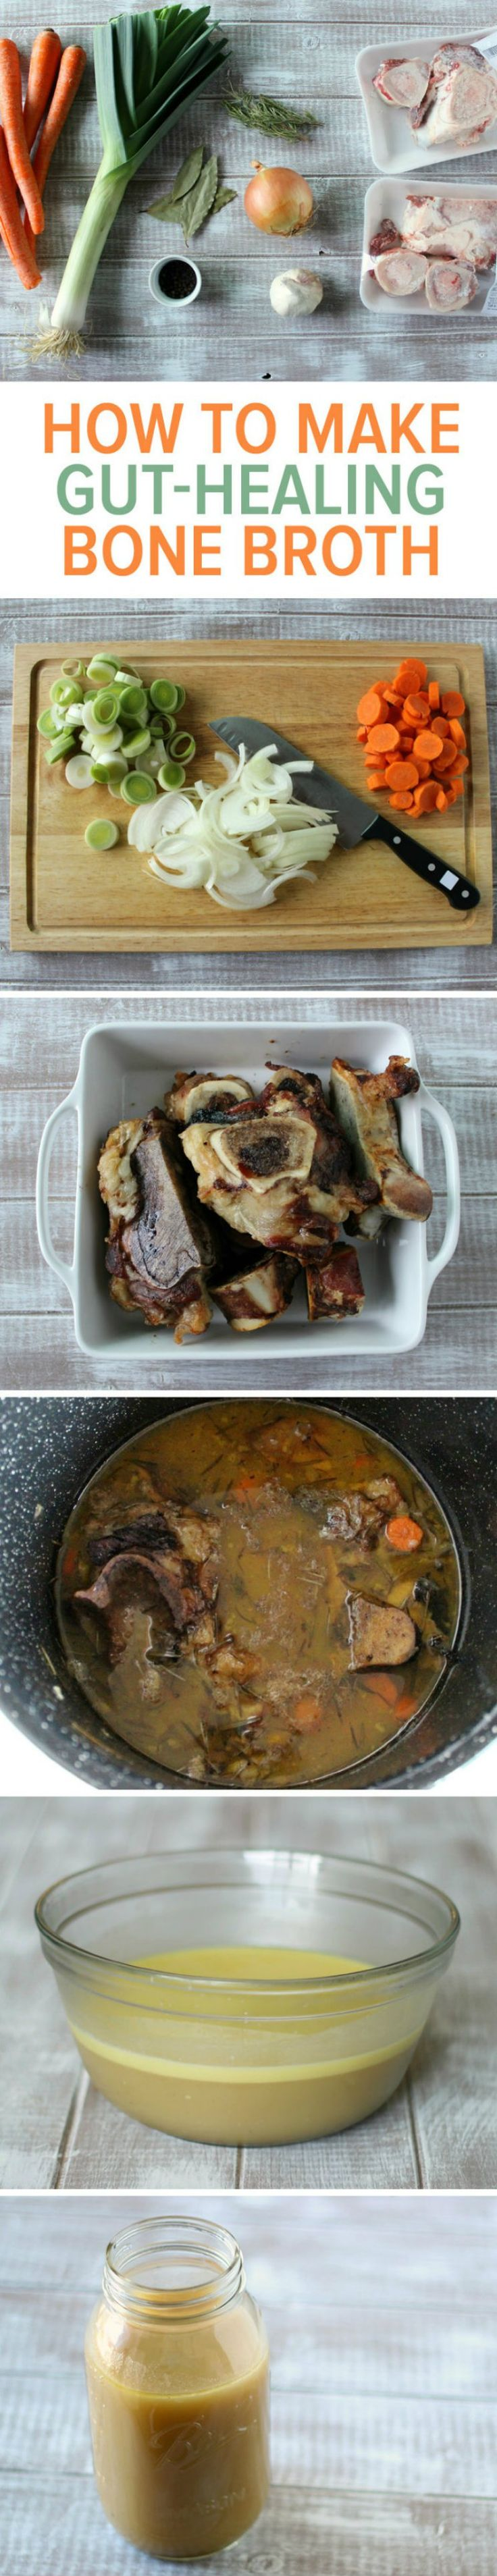 Learn how to make our gut-healing bone broth recipe - the only one you will ever need. Bone broth is filled with minerals to keep your gut healthy.